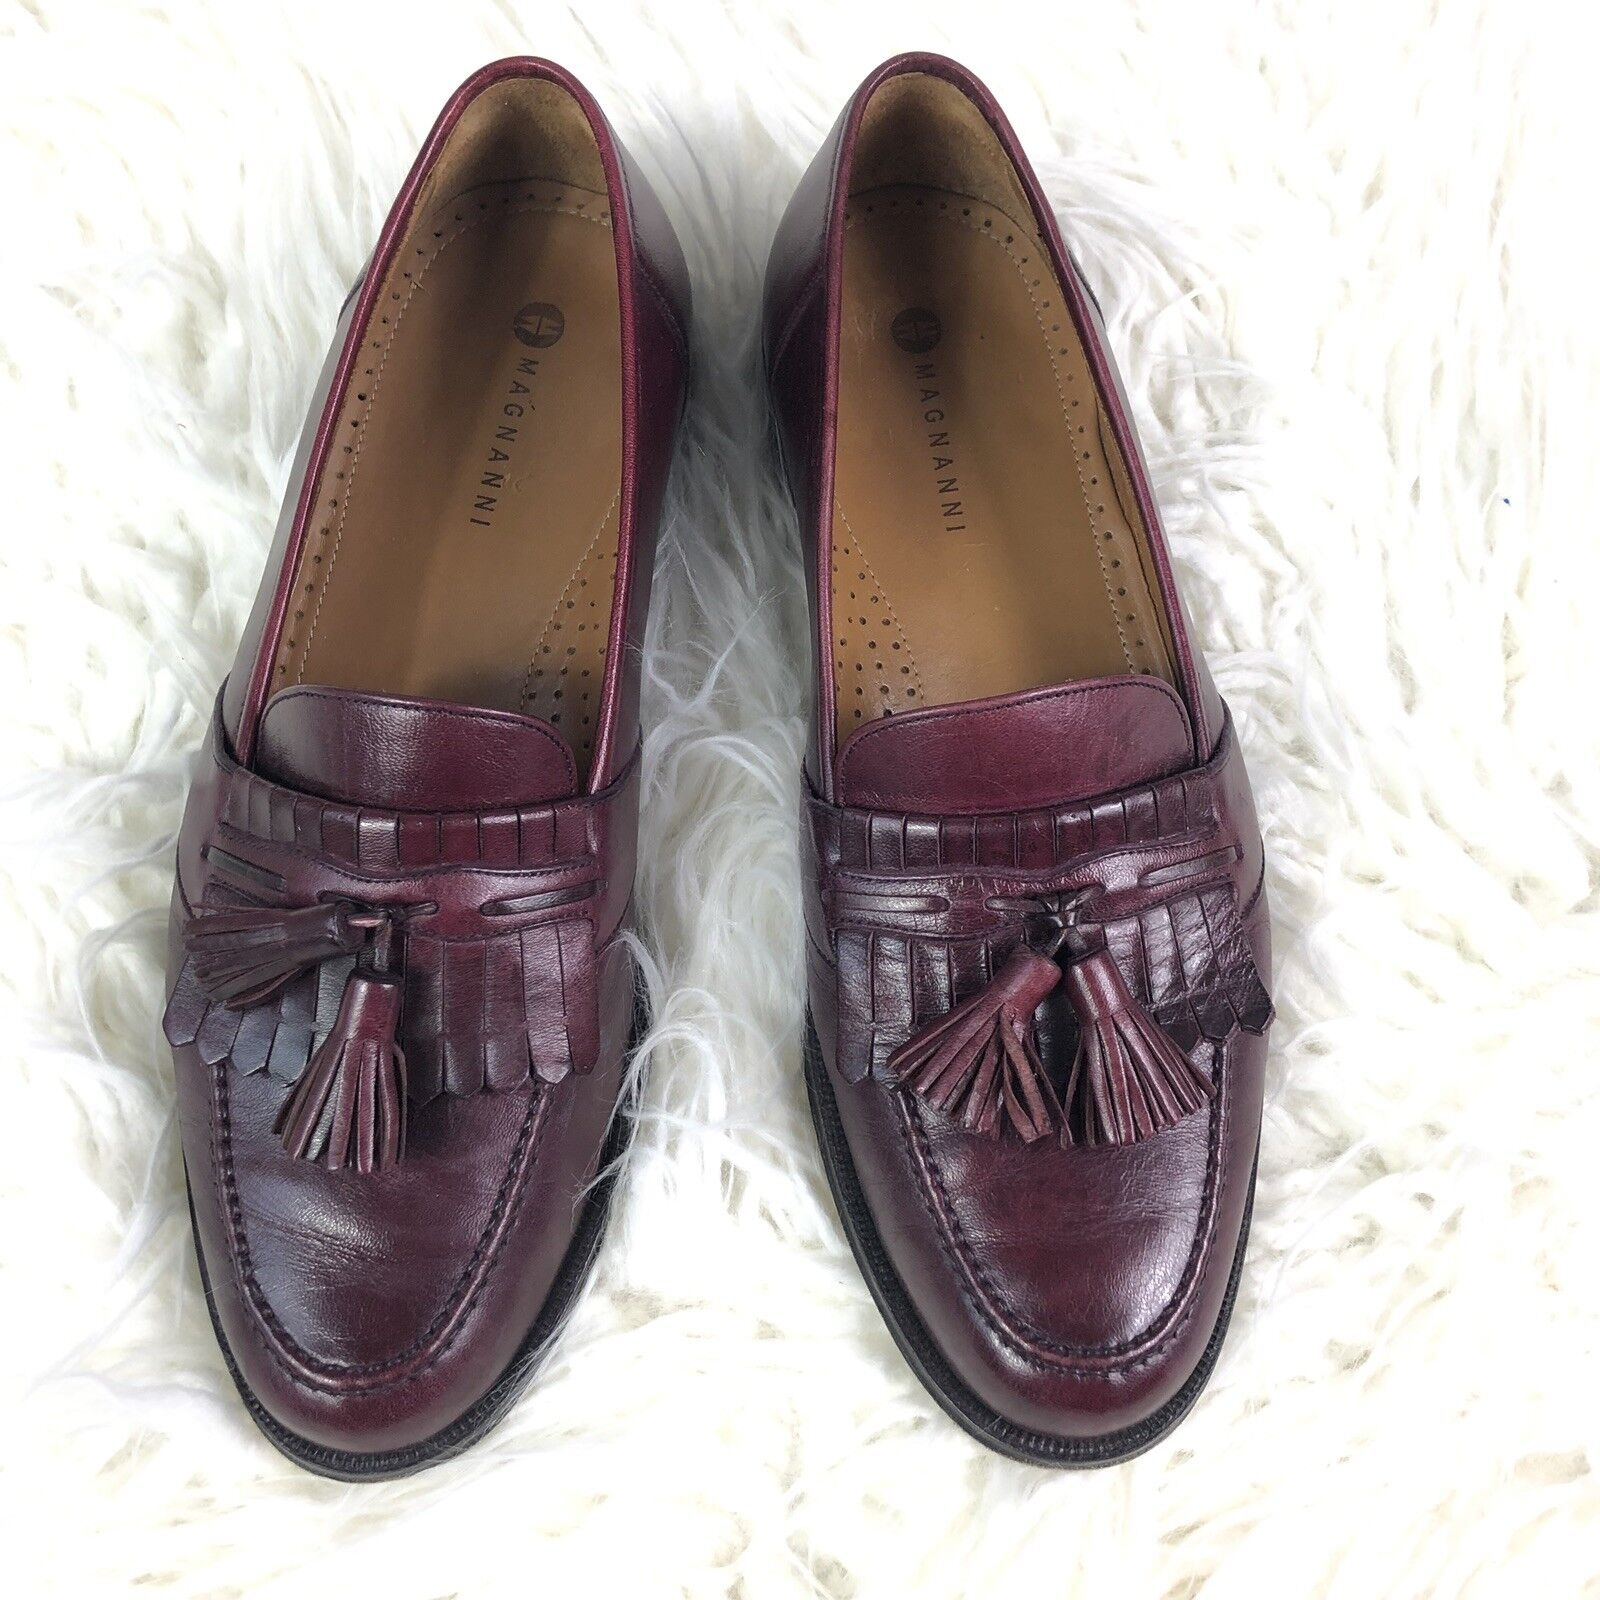 Magnanni mens 9.5 M loafers loafers loafers schuhe slip on kiltie tassel leather burgandy Spain da1f6e